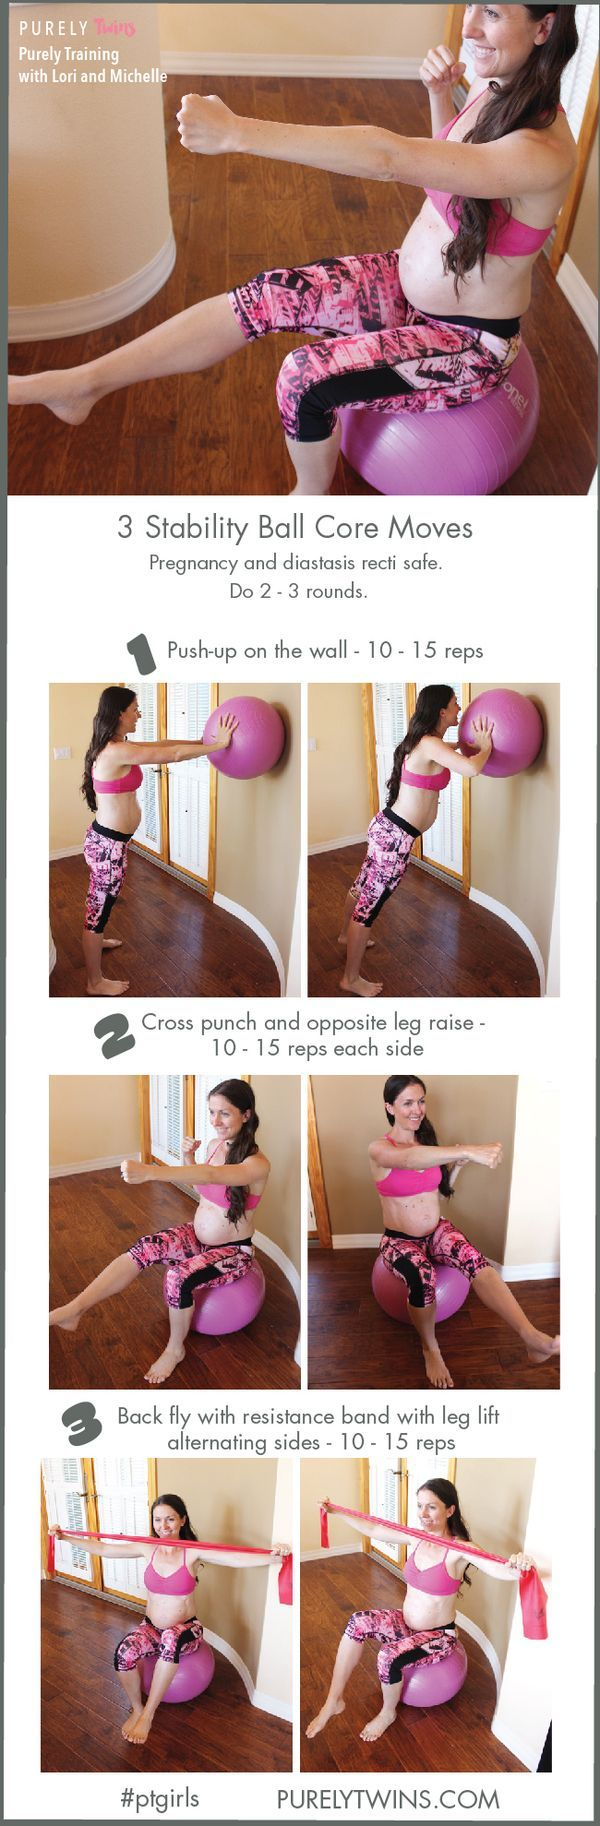 Confused on what are the best and safe CORE exercises to do during PREGNANCY? Especially to help prevent DIASTASIS. Here are 3 must-do core exercises that work the deep core muscles to keep the core and pelvic floor supported as your belly grows over each trimester. Note there are NO front loaded exercises which is key. Great routine for your abs to support your growing baby. #workout